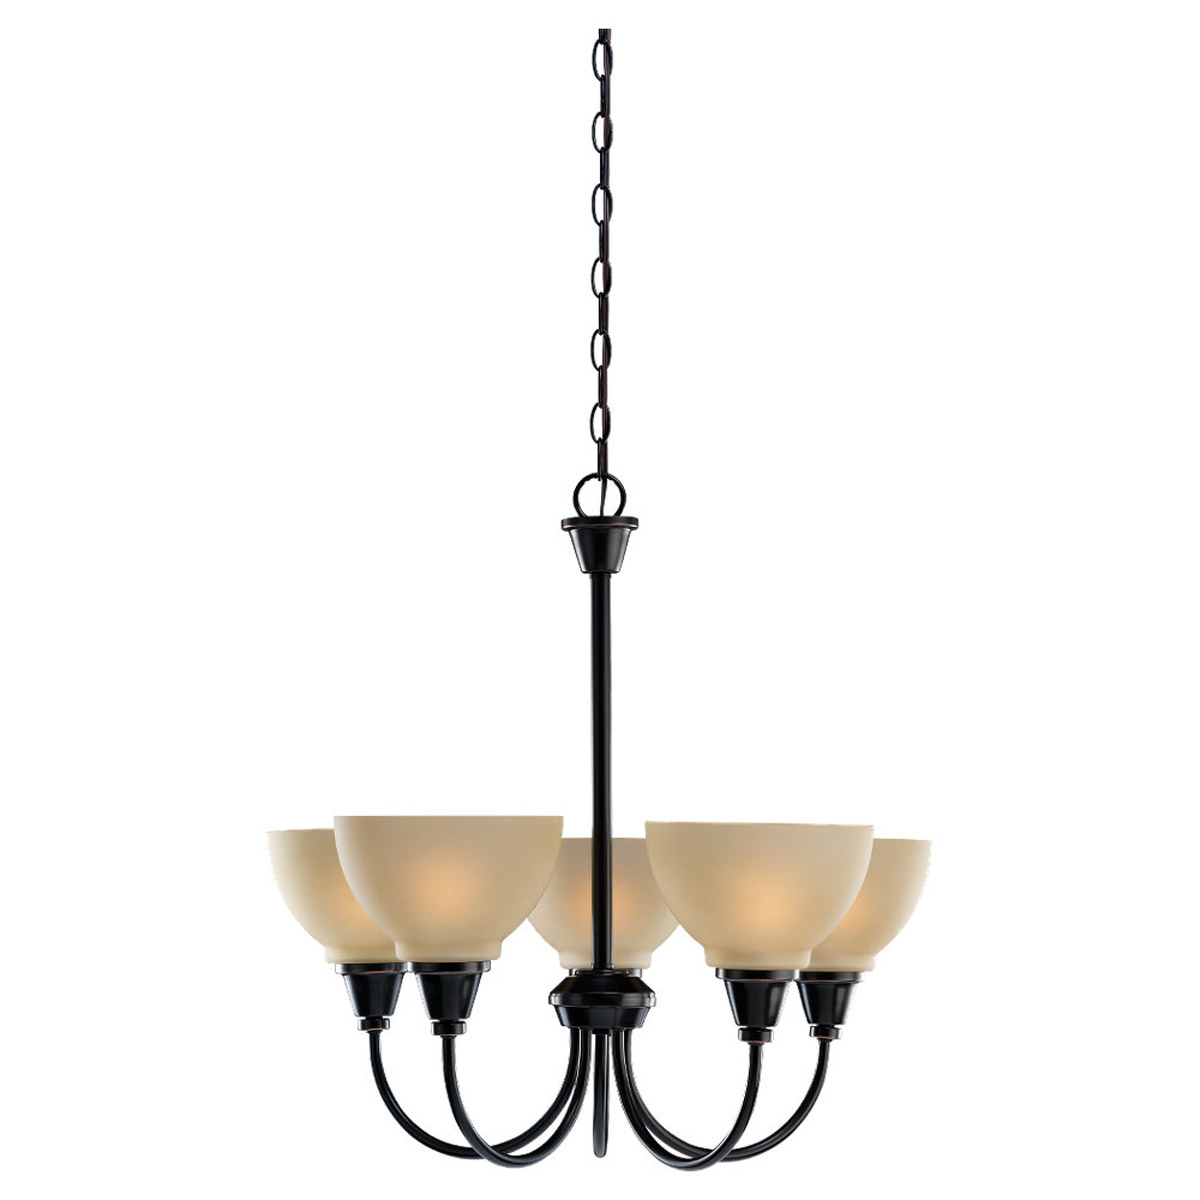 Sea Gull Lighting Sydney 5 Light Chandelier in Vintage Brown 31746-862 photo